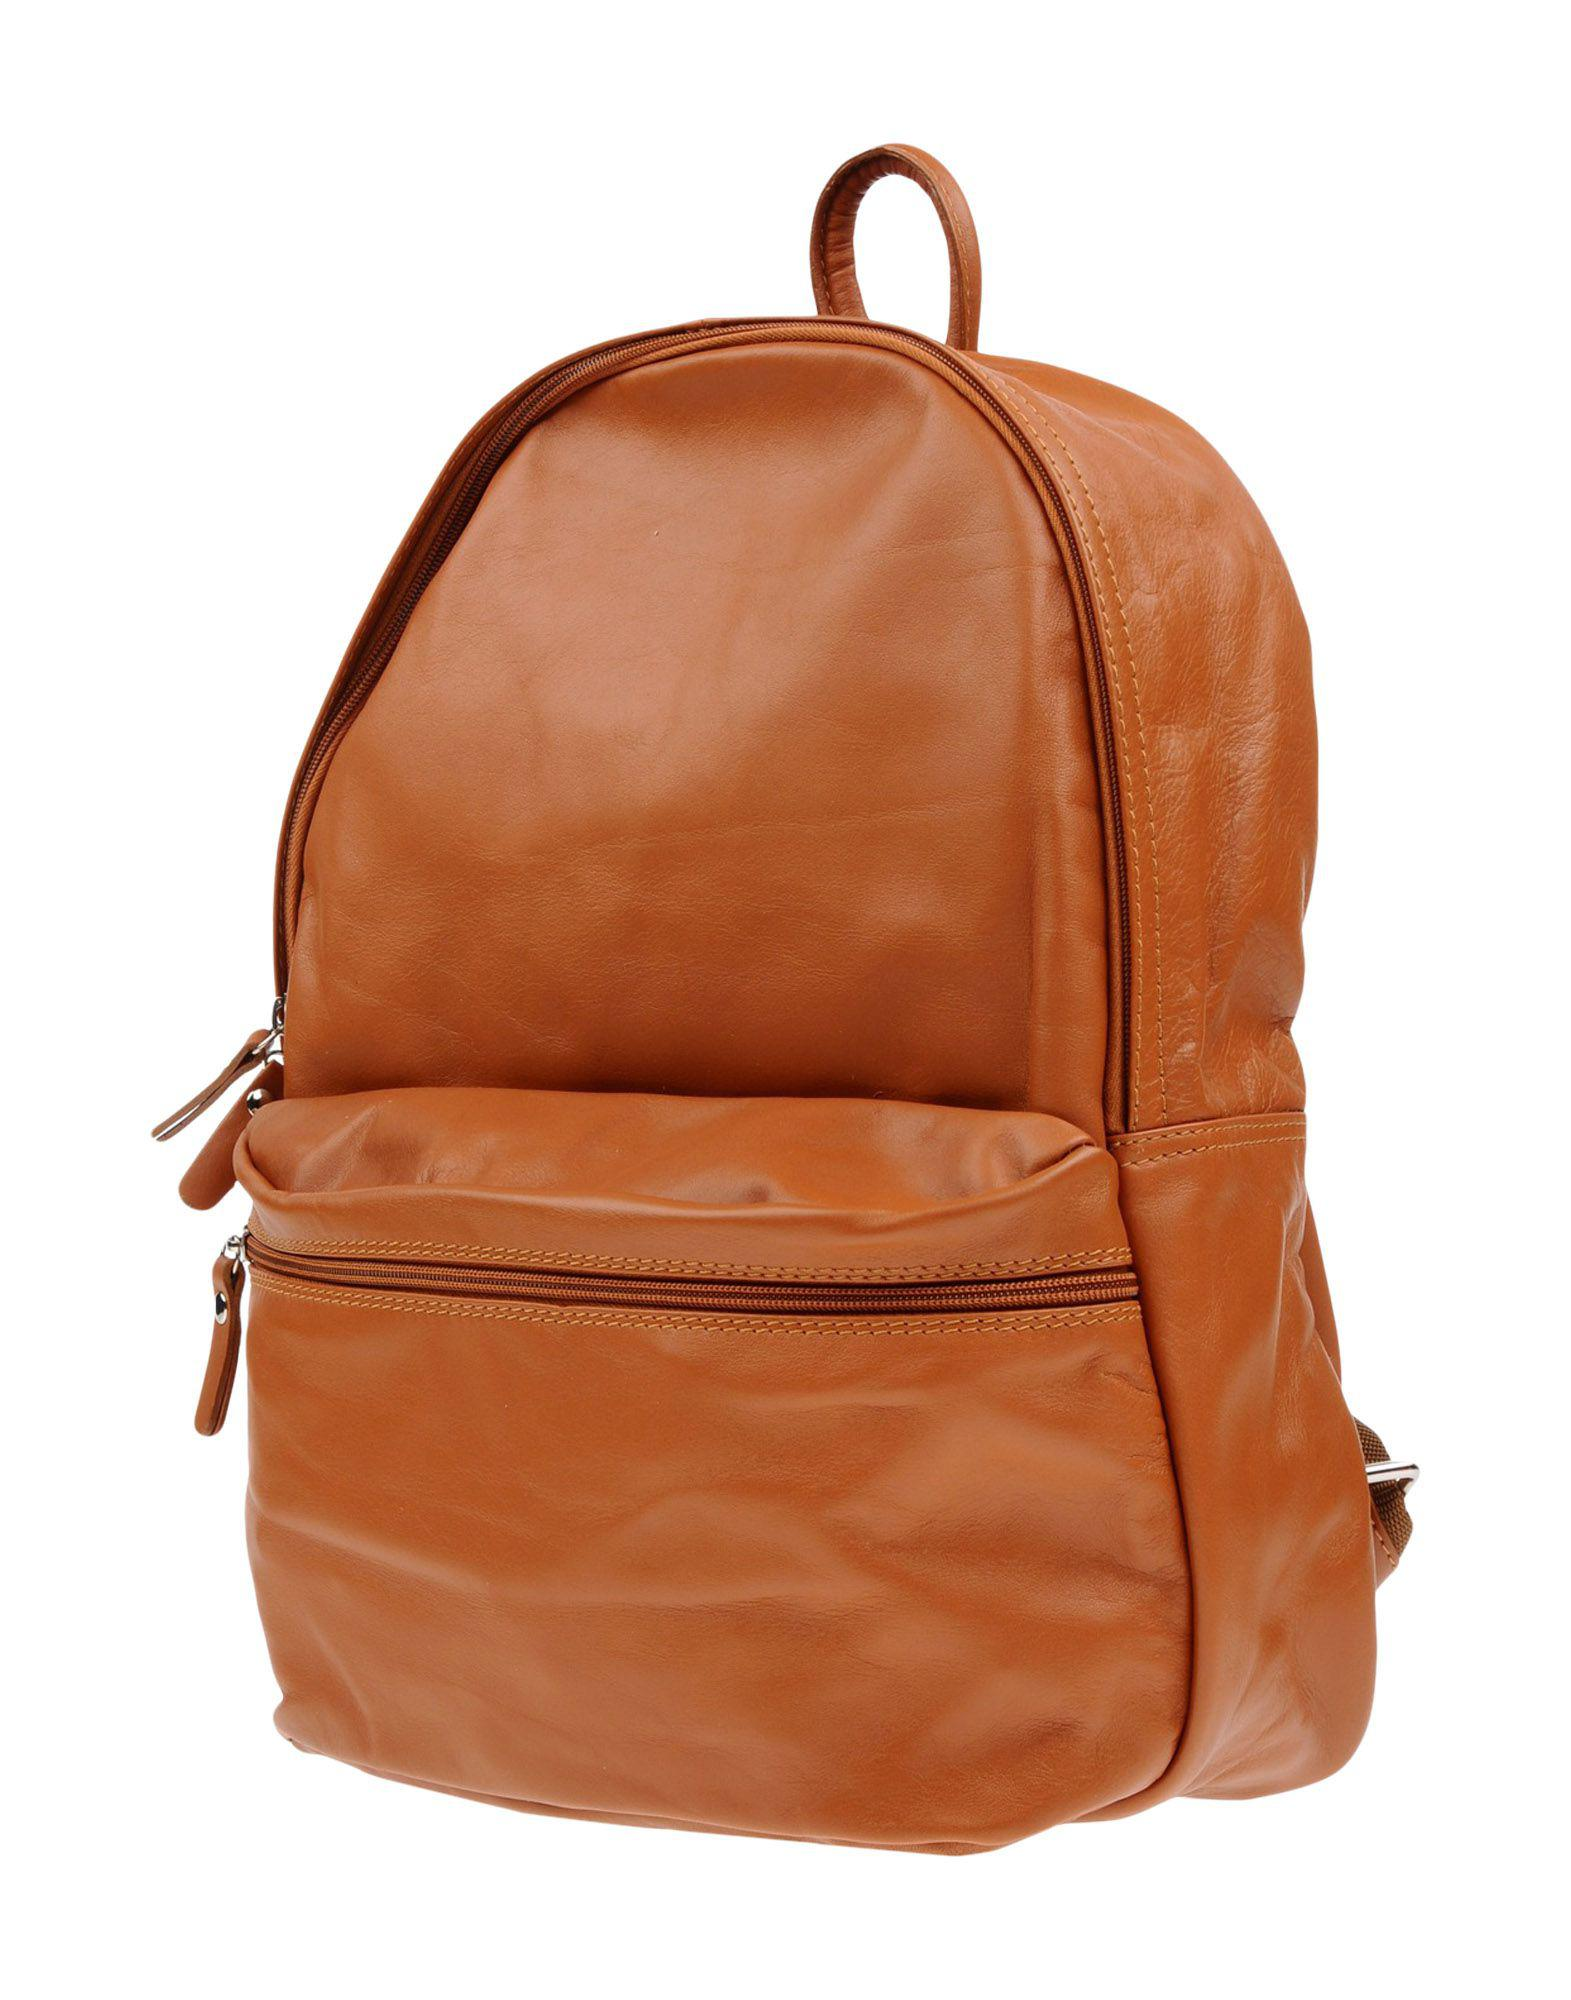 BAGS - Backpacks & Bum bags Drumohr Clearance Popular oXH3ahQ6